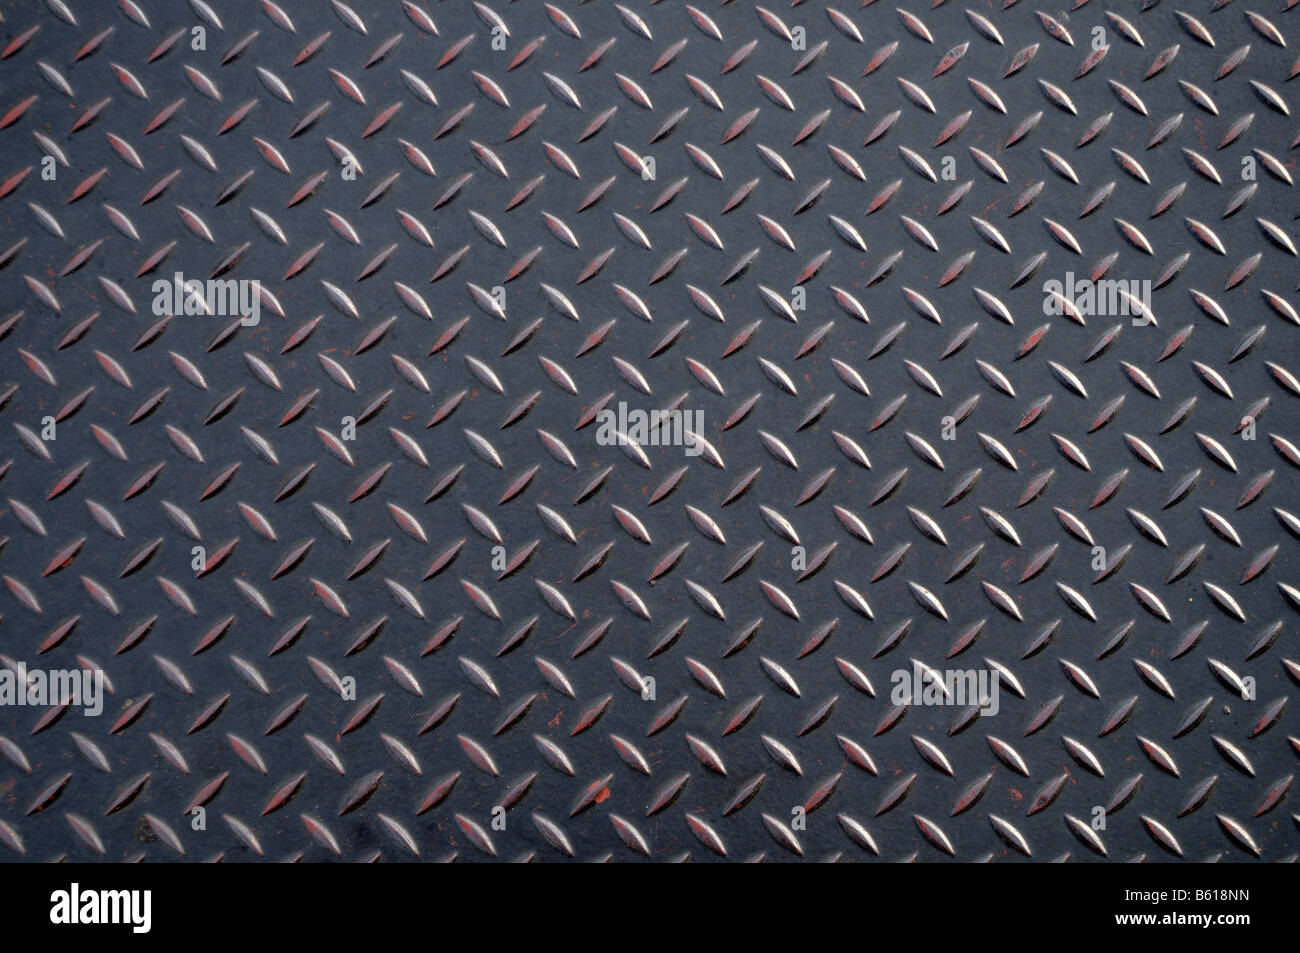 Anti-slip structured metal plate - Stock Image